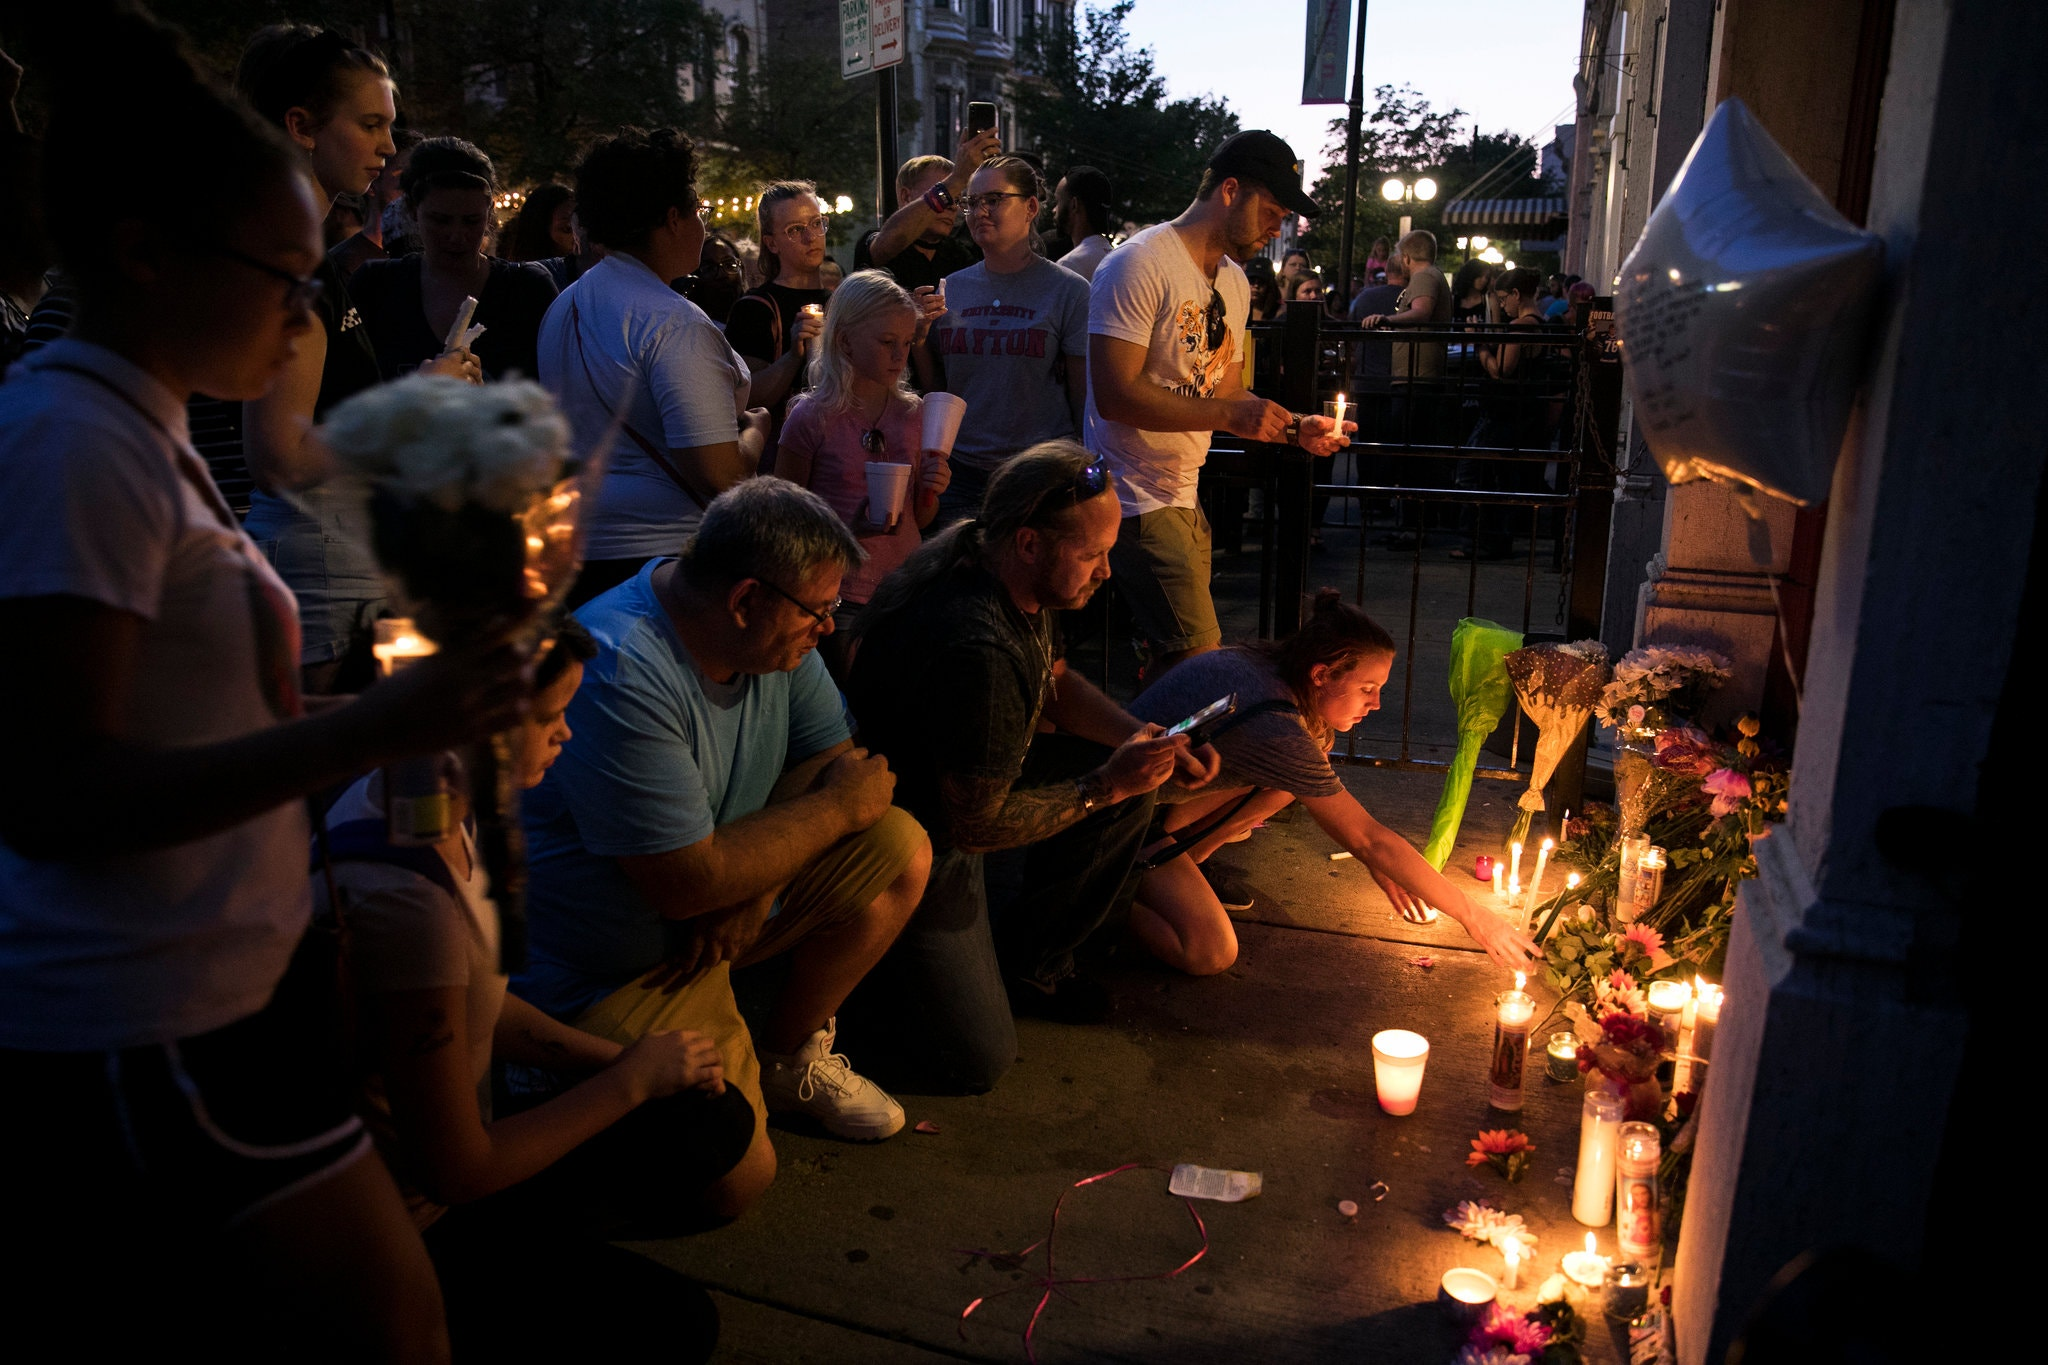 Mourners gathered at a vigil in Dayton, Ohio, on Sunday after a gunman killed nine people in the city. Credit Maddie McGarvey for The New York Times